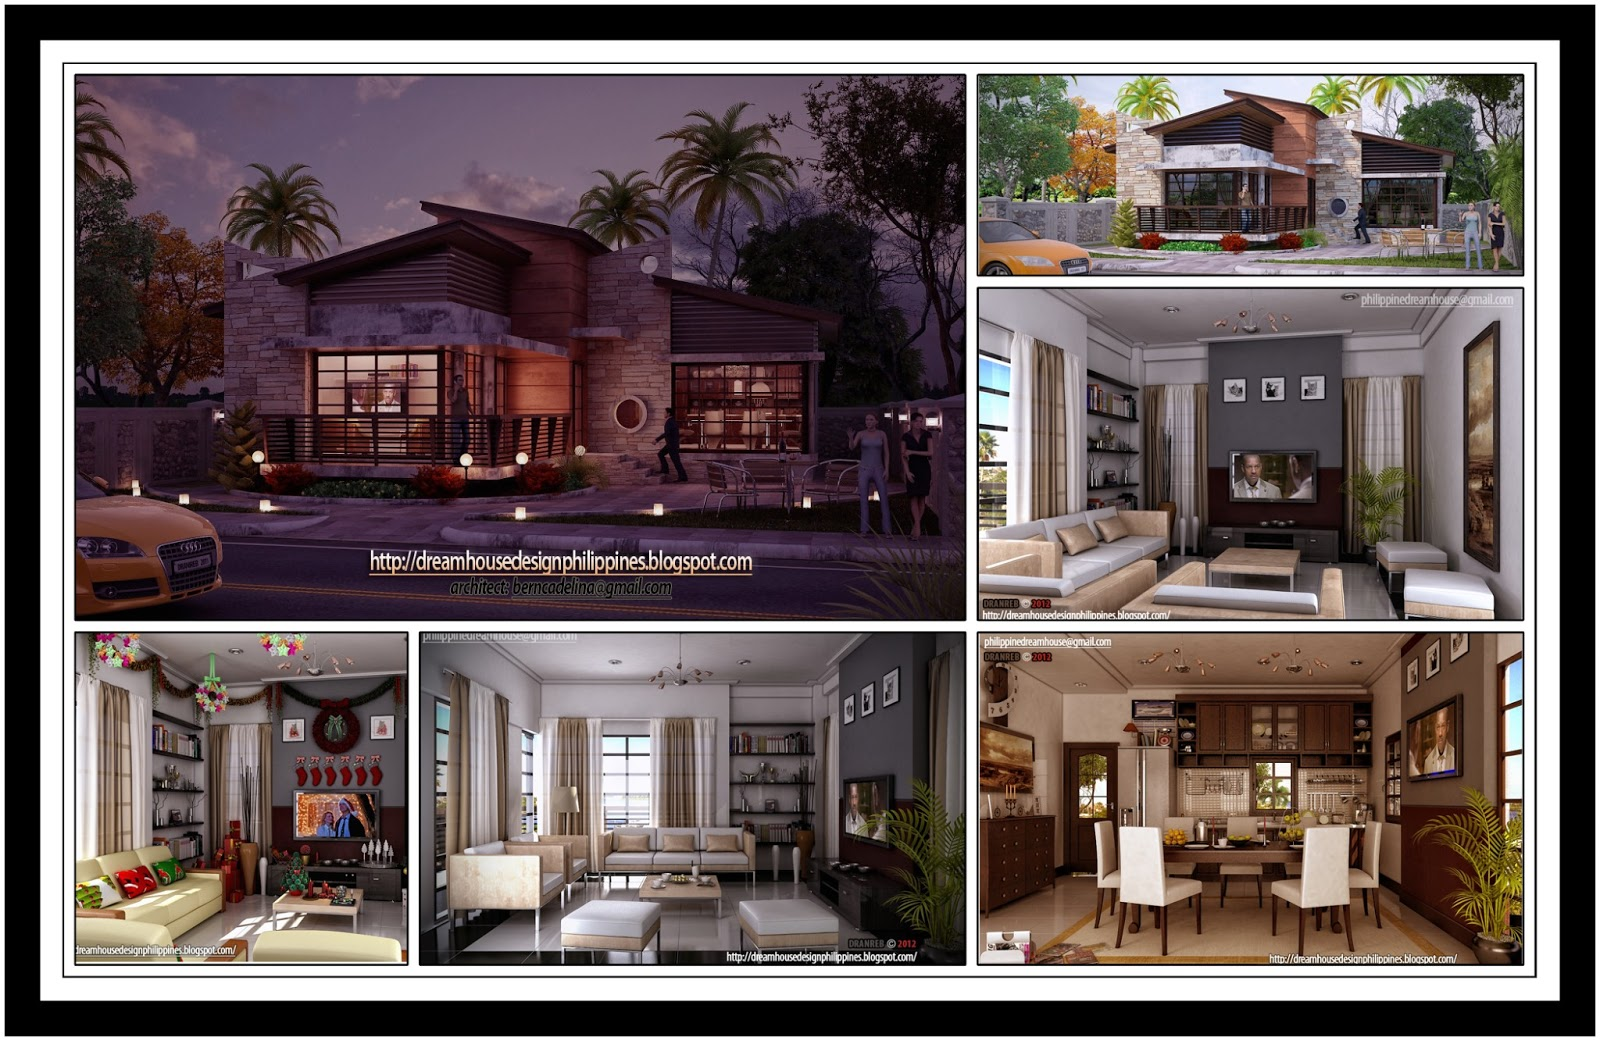 Philippine dream house design post modern house 2 updates for Post modern home design